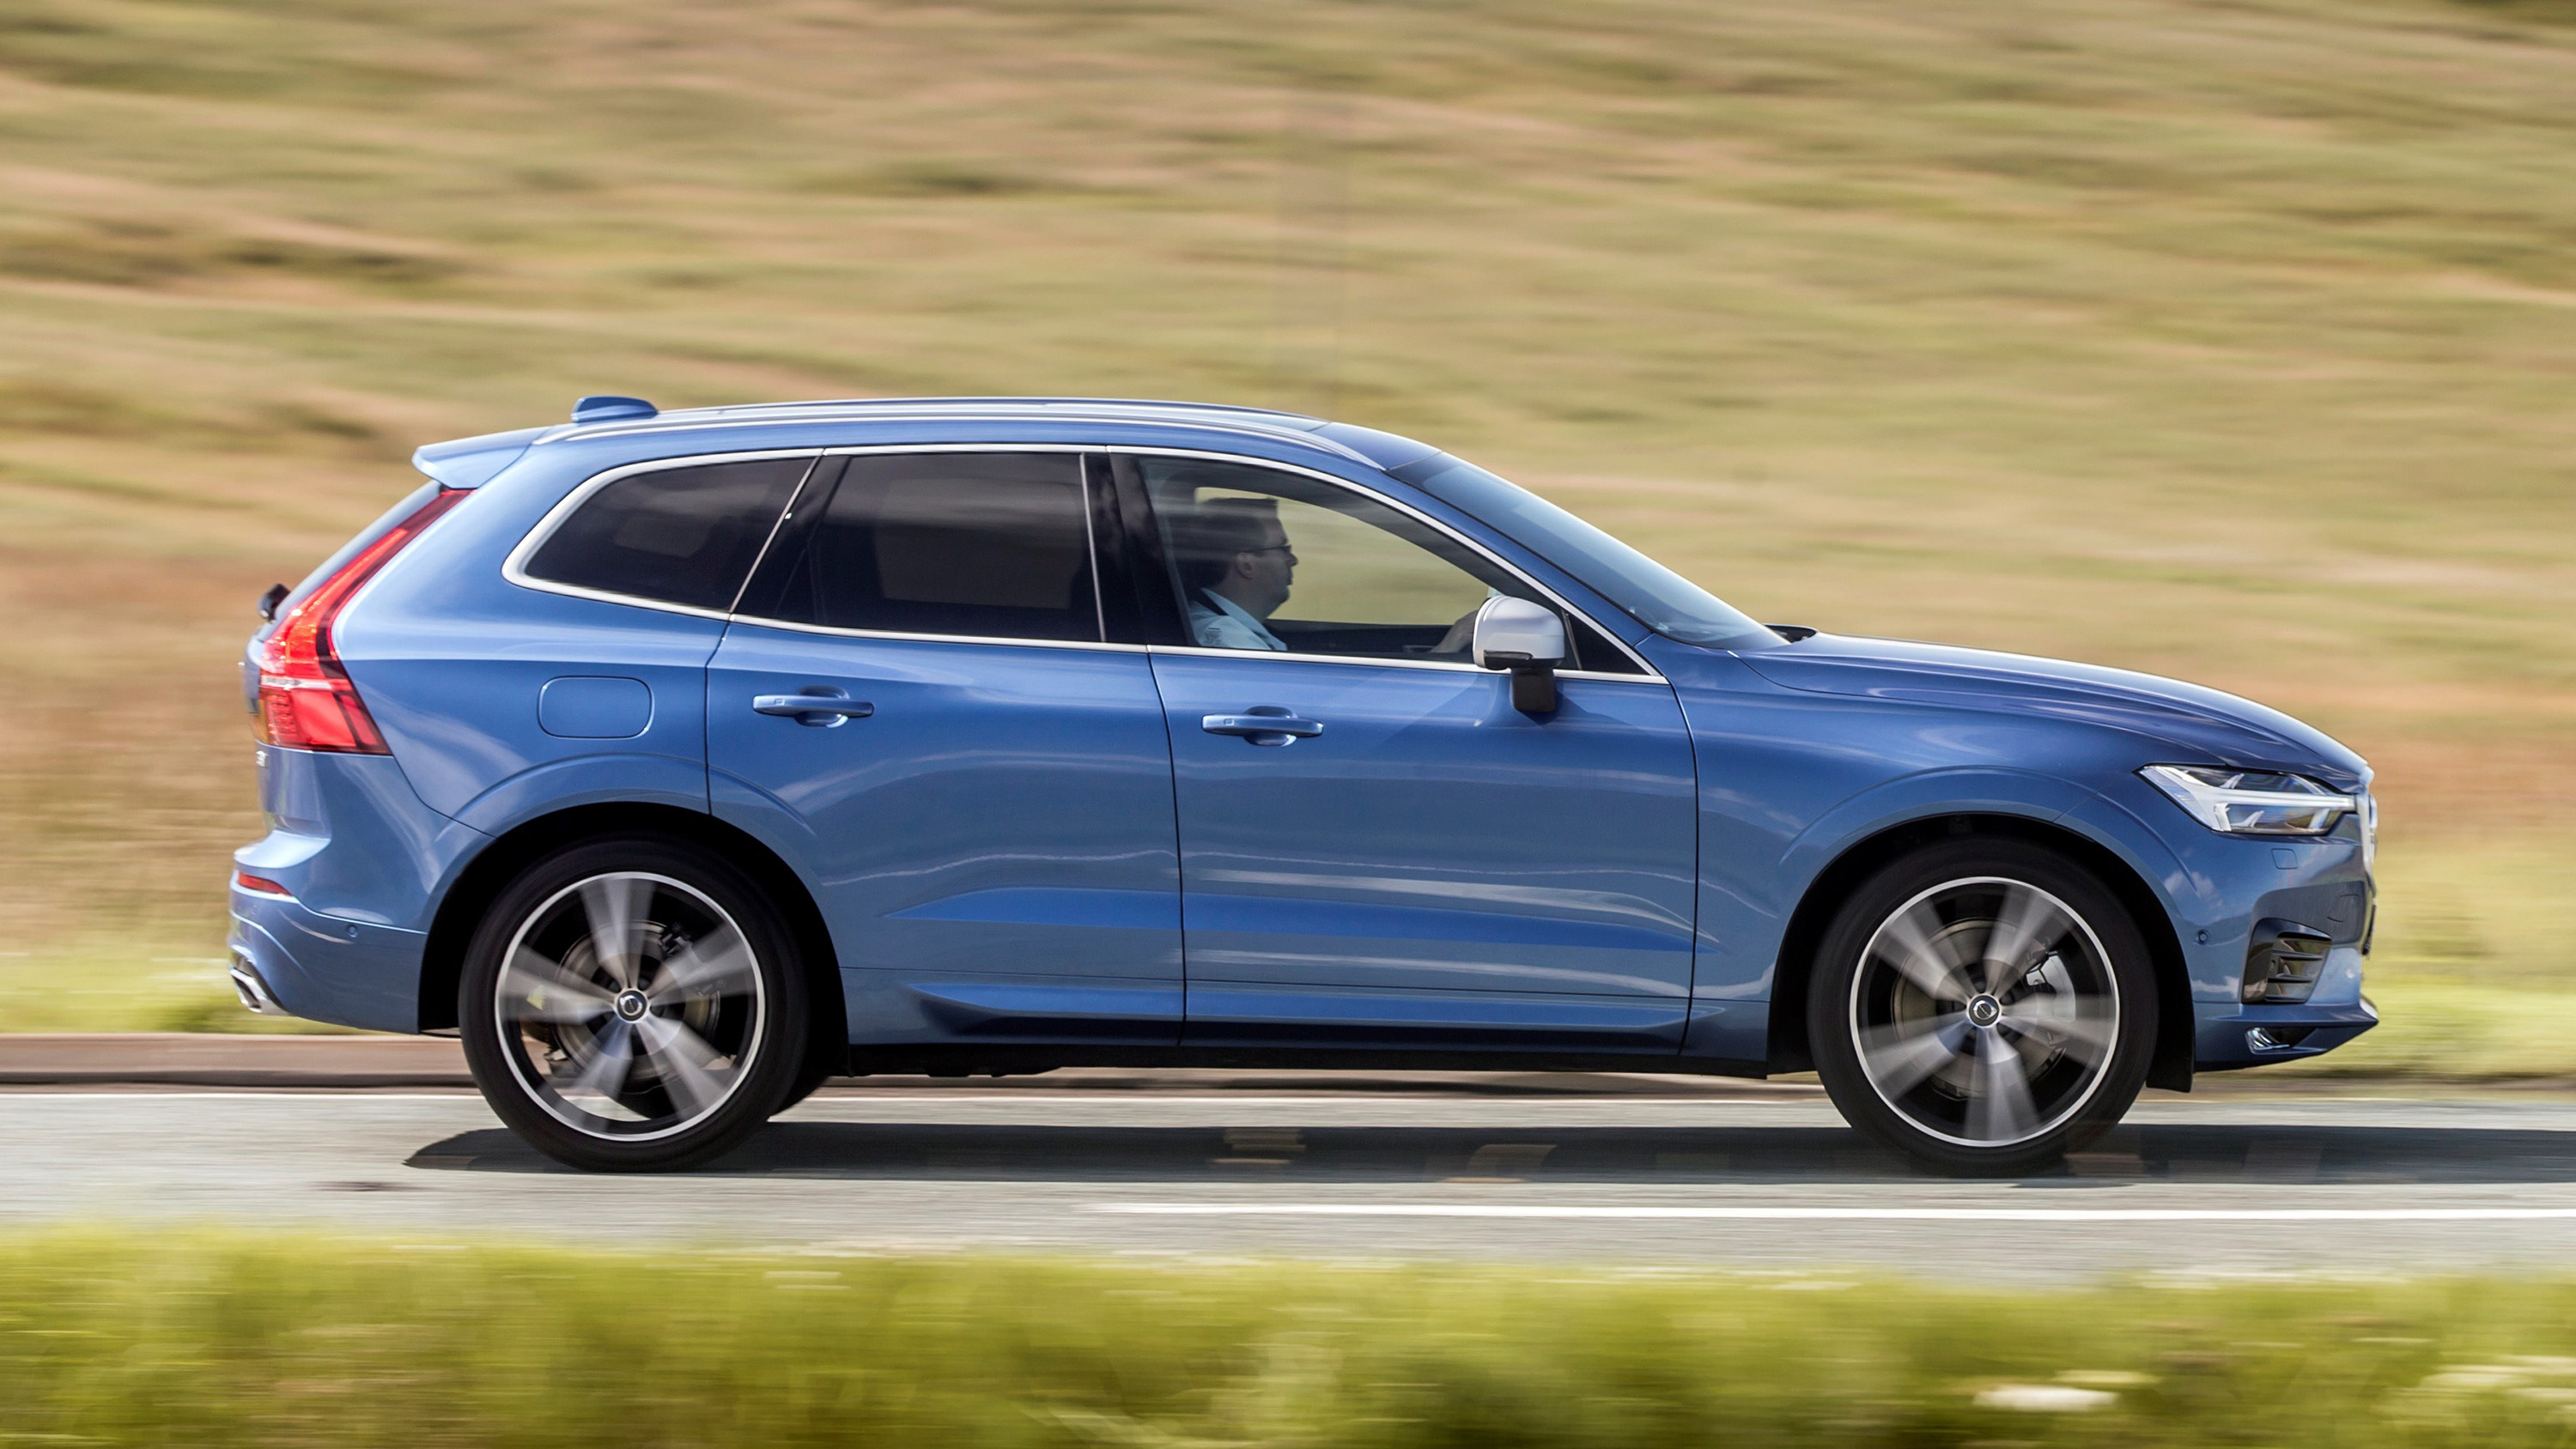 all drive design model volvo test review bigger team new from for second hybrid brawnier the made and is supersuv plugin longer generation bolder